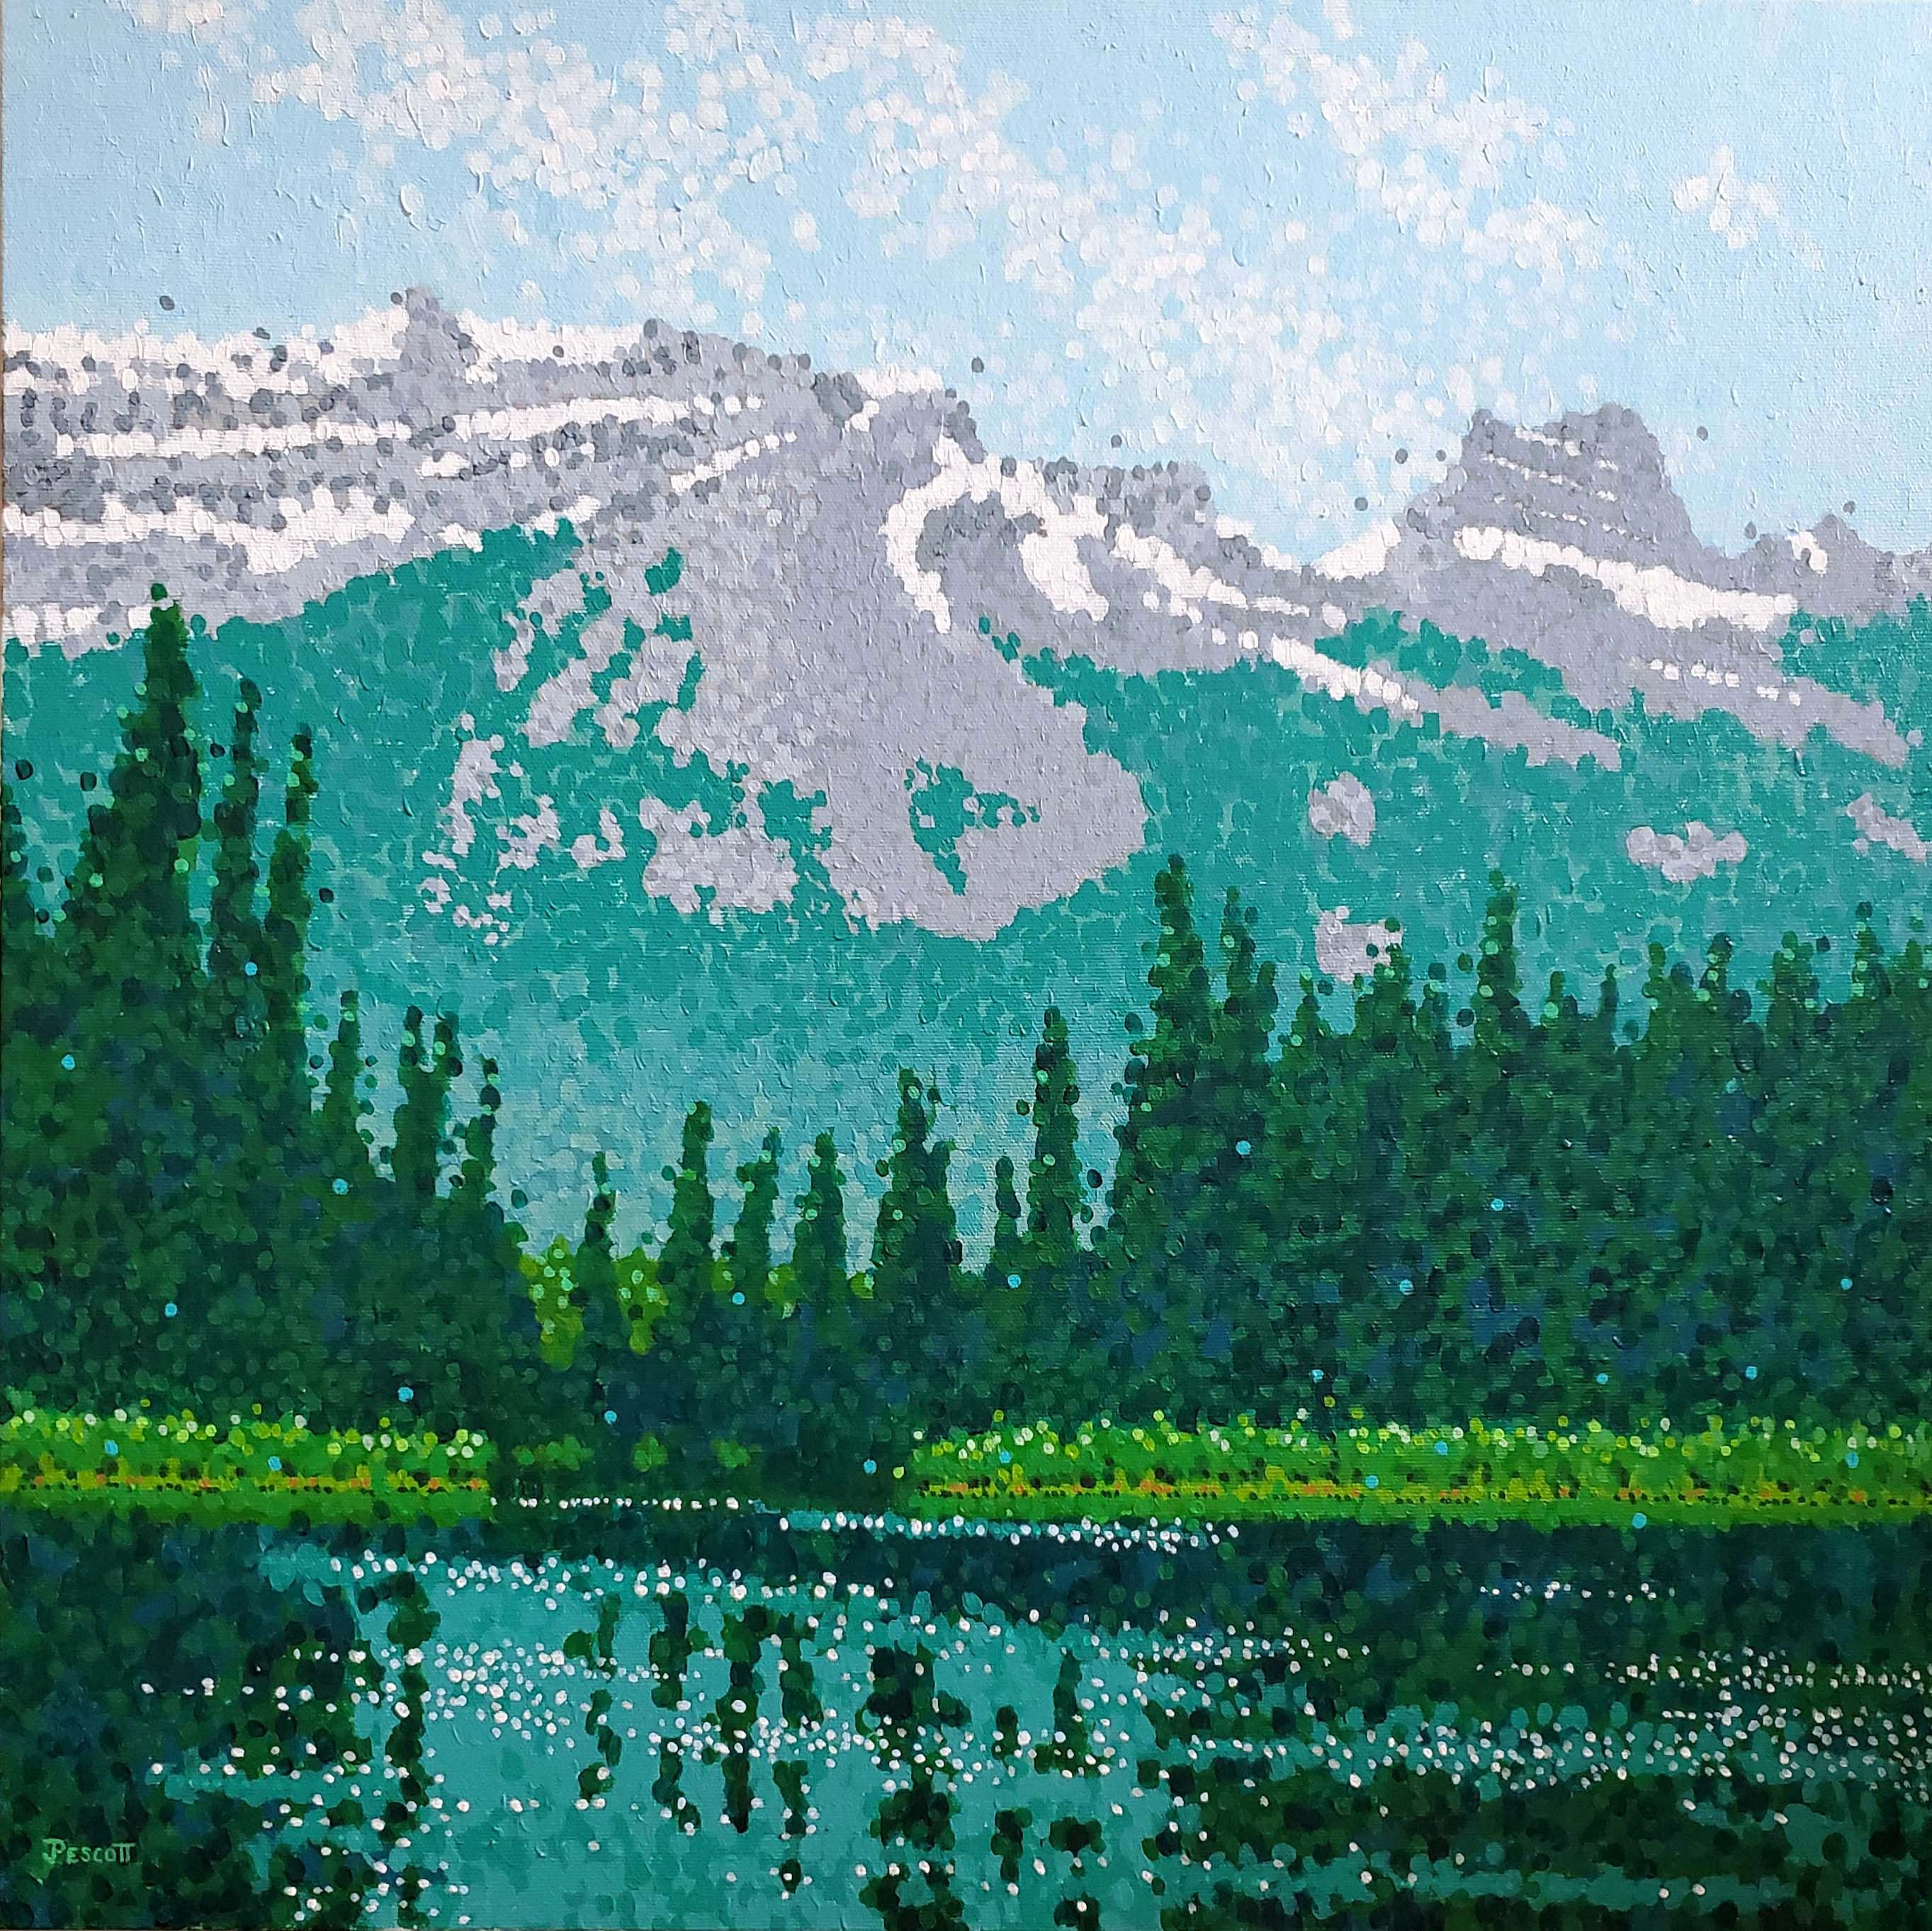 Pescott bow river banff 20x20 x6kc7w